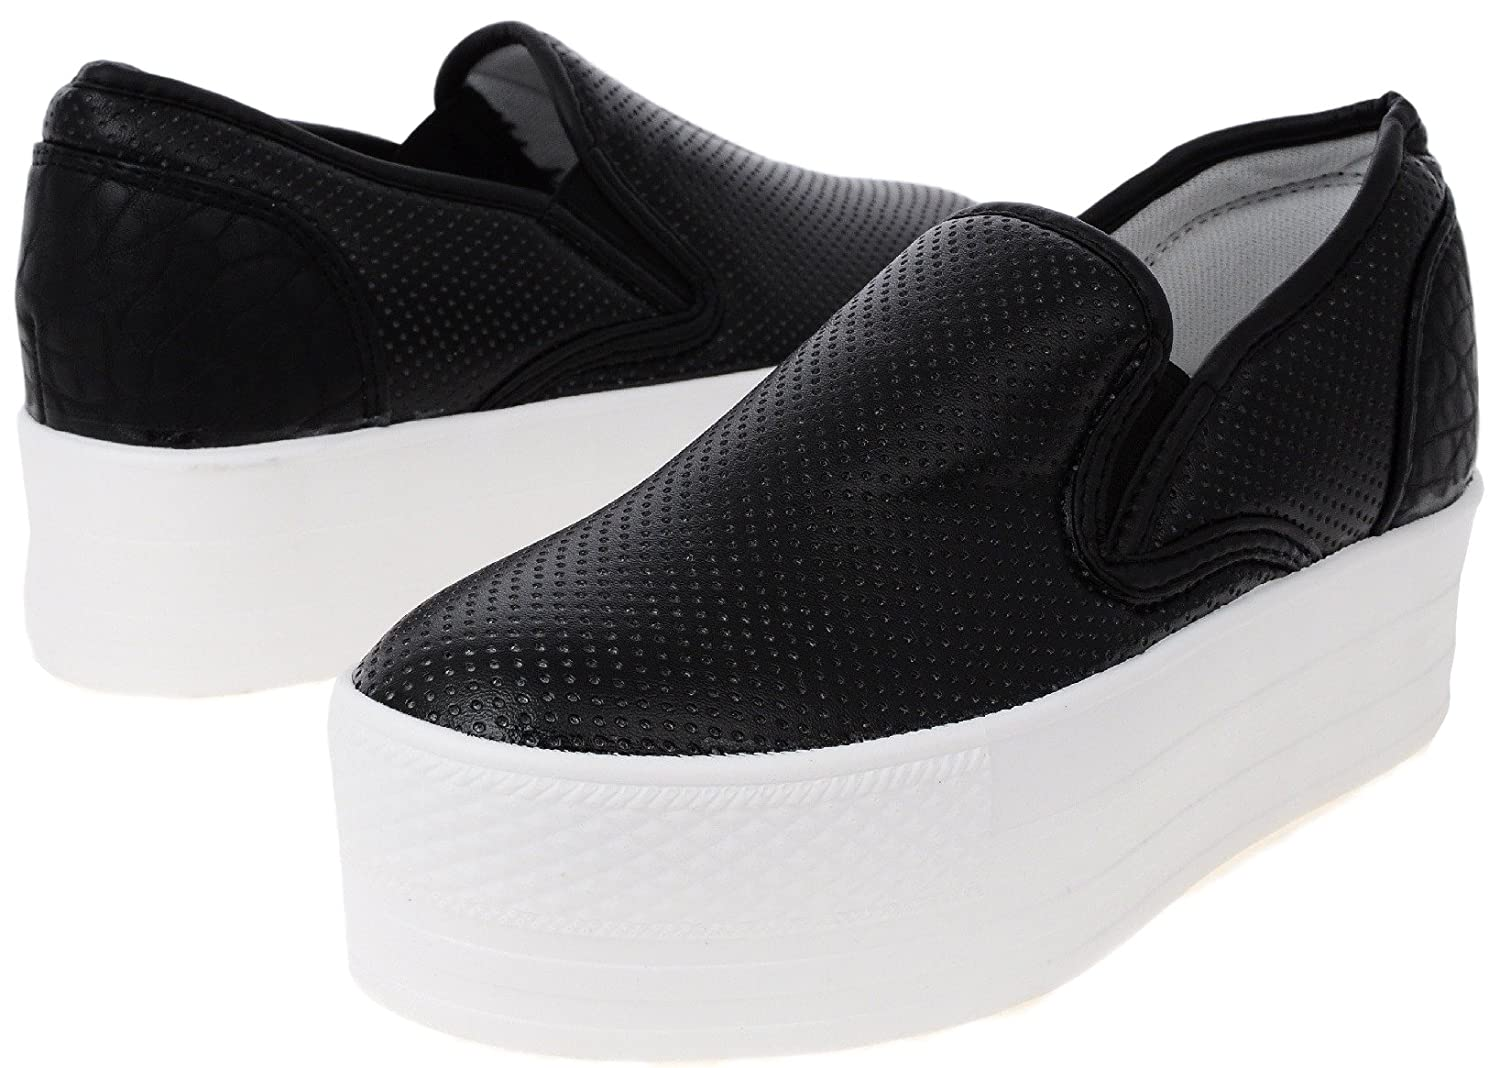 0460daee0cad2 Maxstar C7 50 Punched Synthetic Leather White Platform Slip on Sneakers